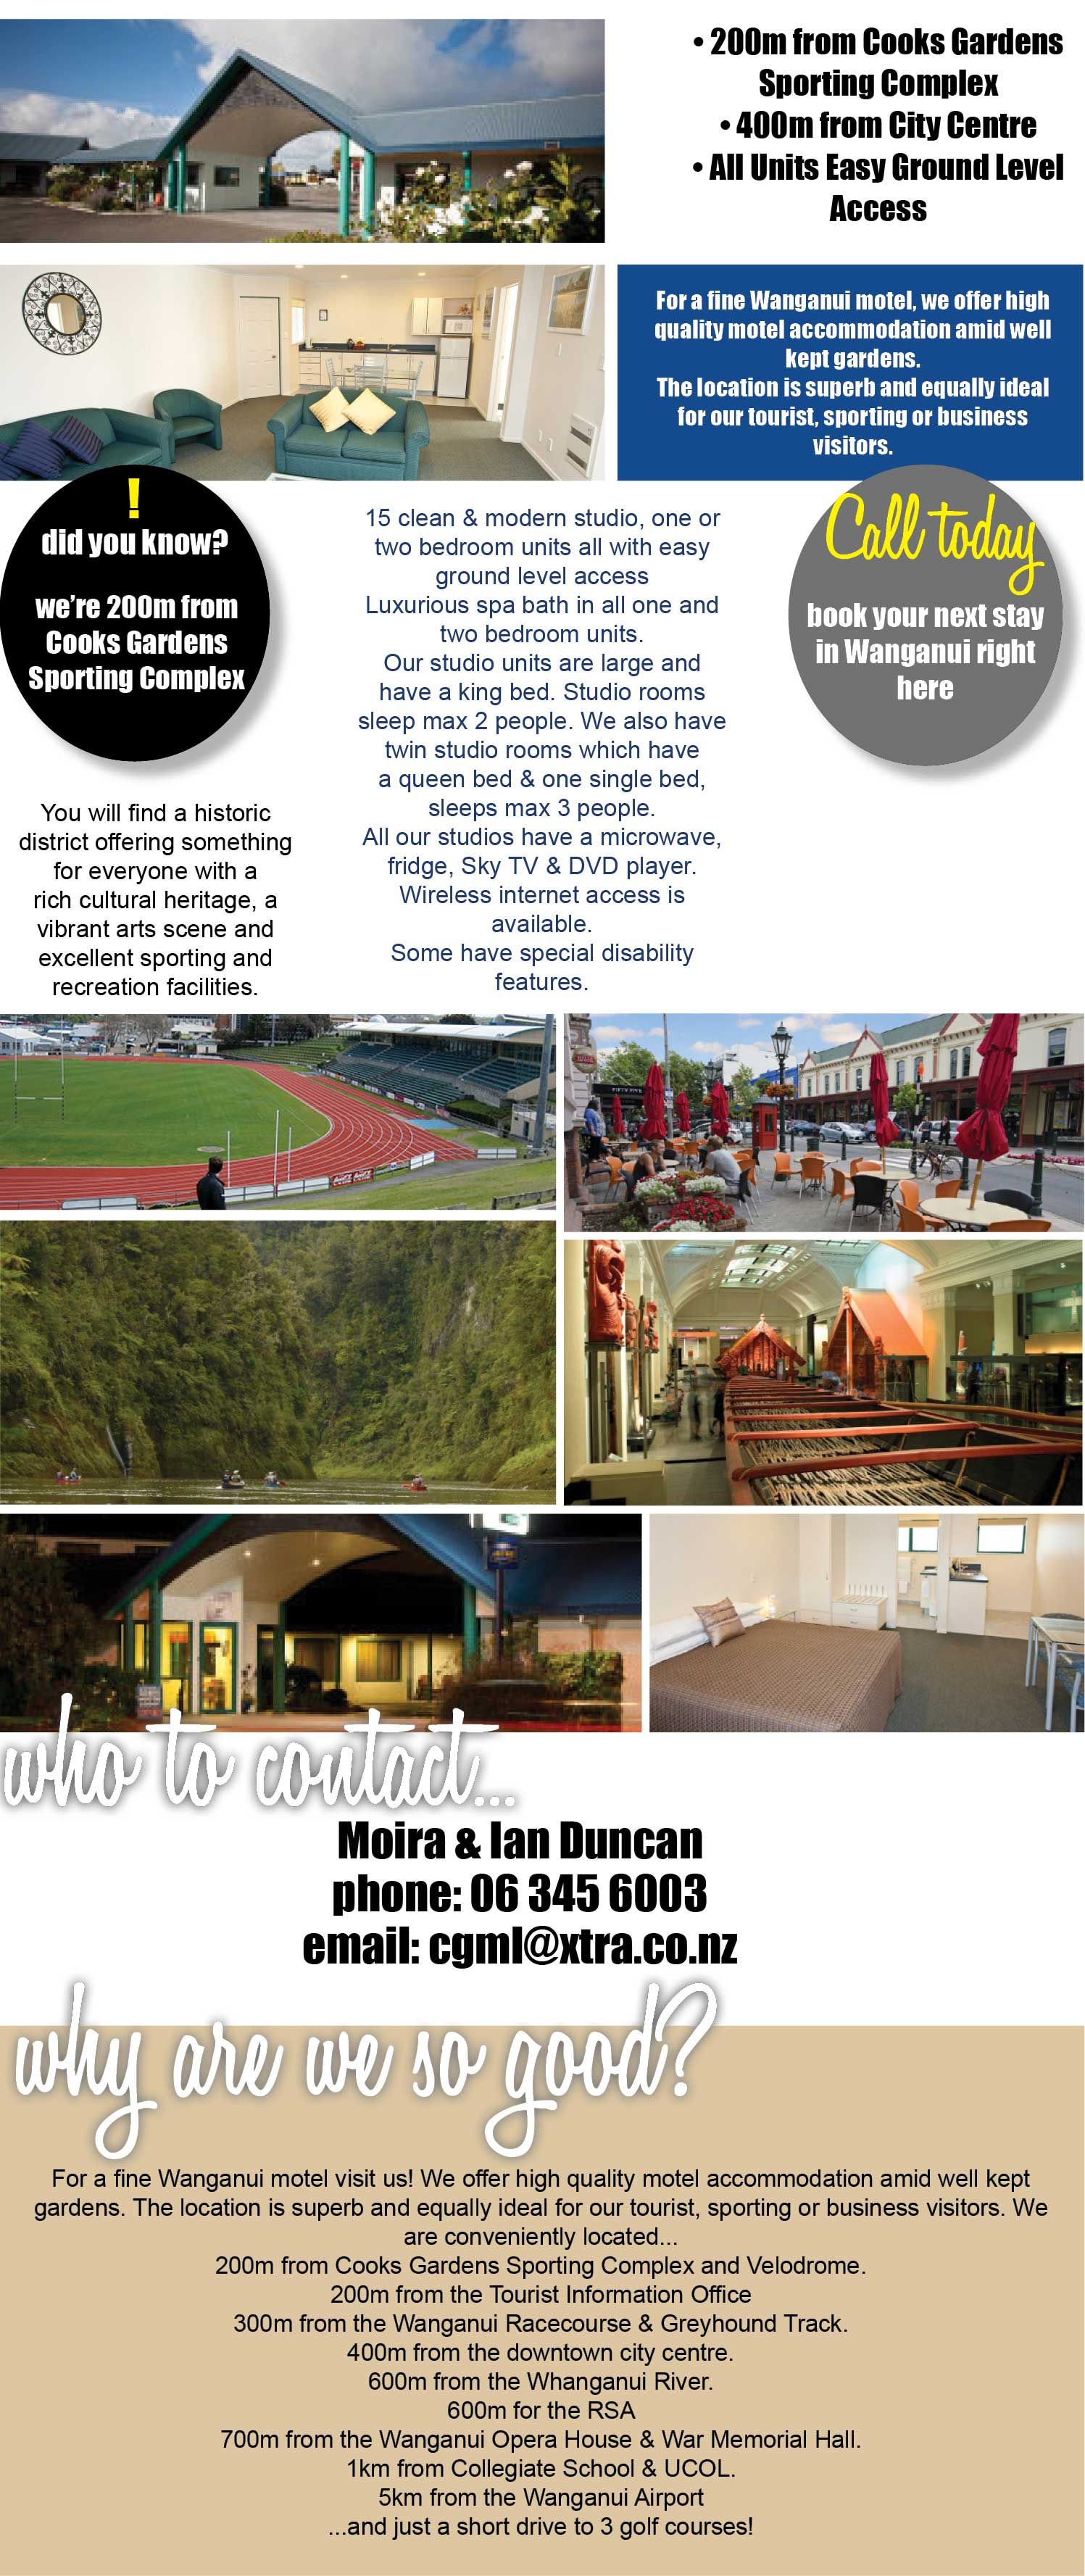 Cooks Gardens Motor Lodge, Wanganui, 200m from sporting complex, 400m from city centre, easy access units, ideal business, sporting or tourists, fine Wanganui motel, spa bath, sky TV. Wanganui accommodation. Accommodation wanganui.